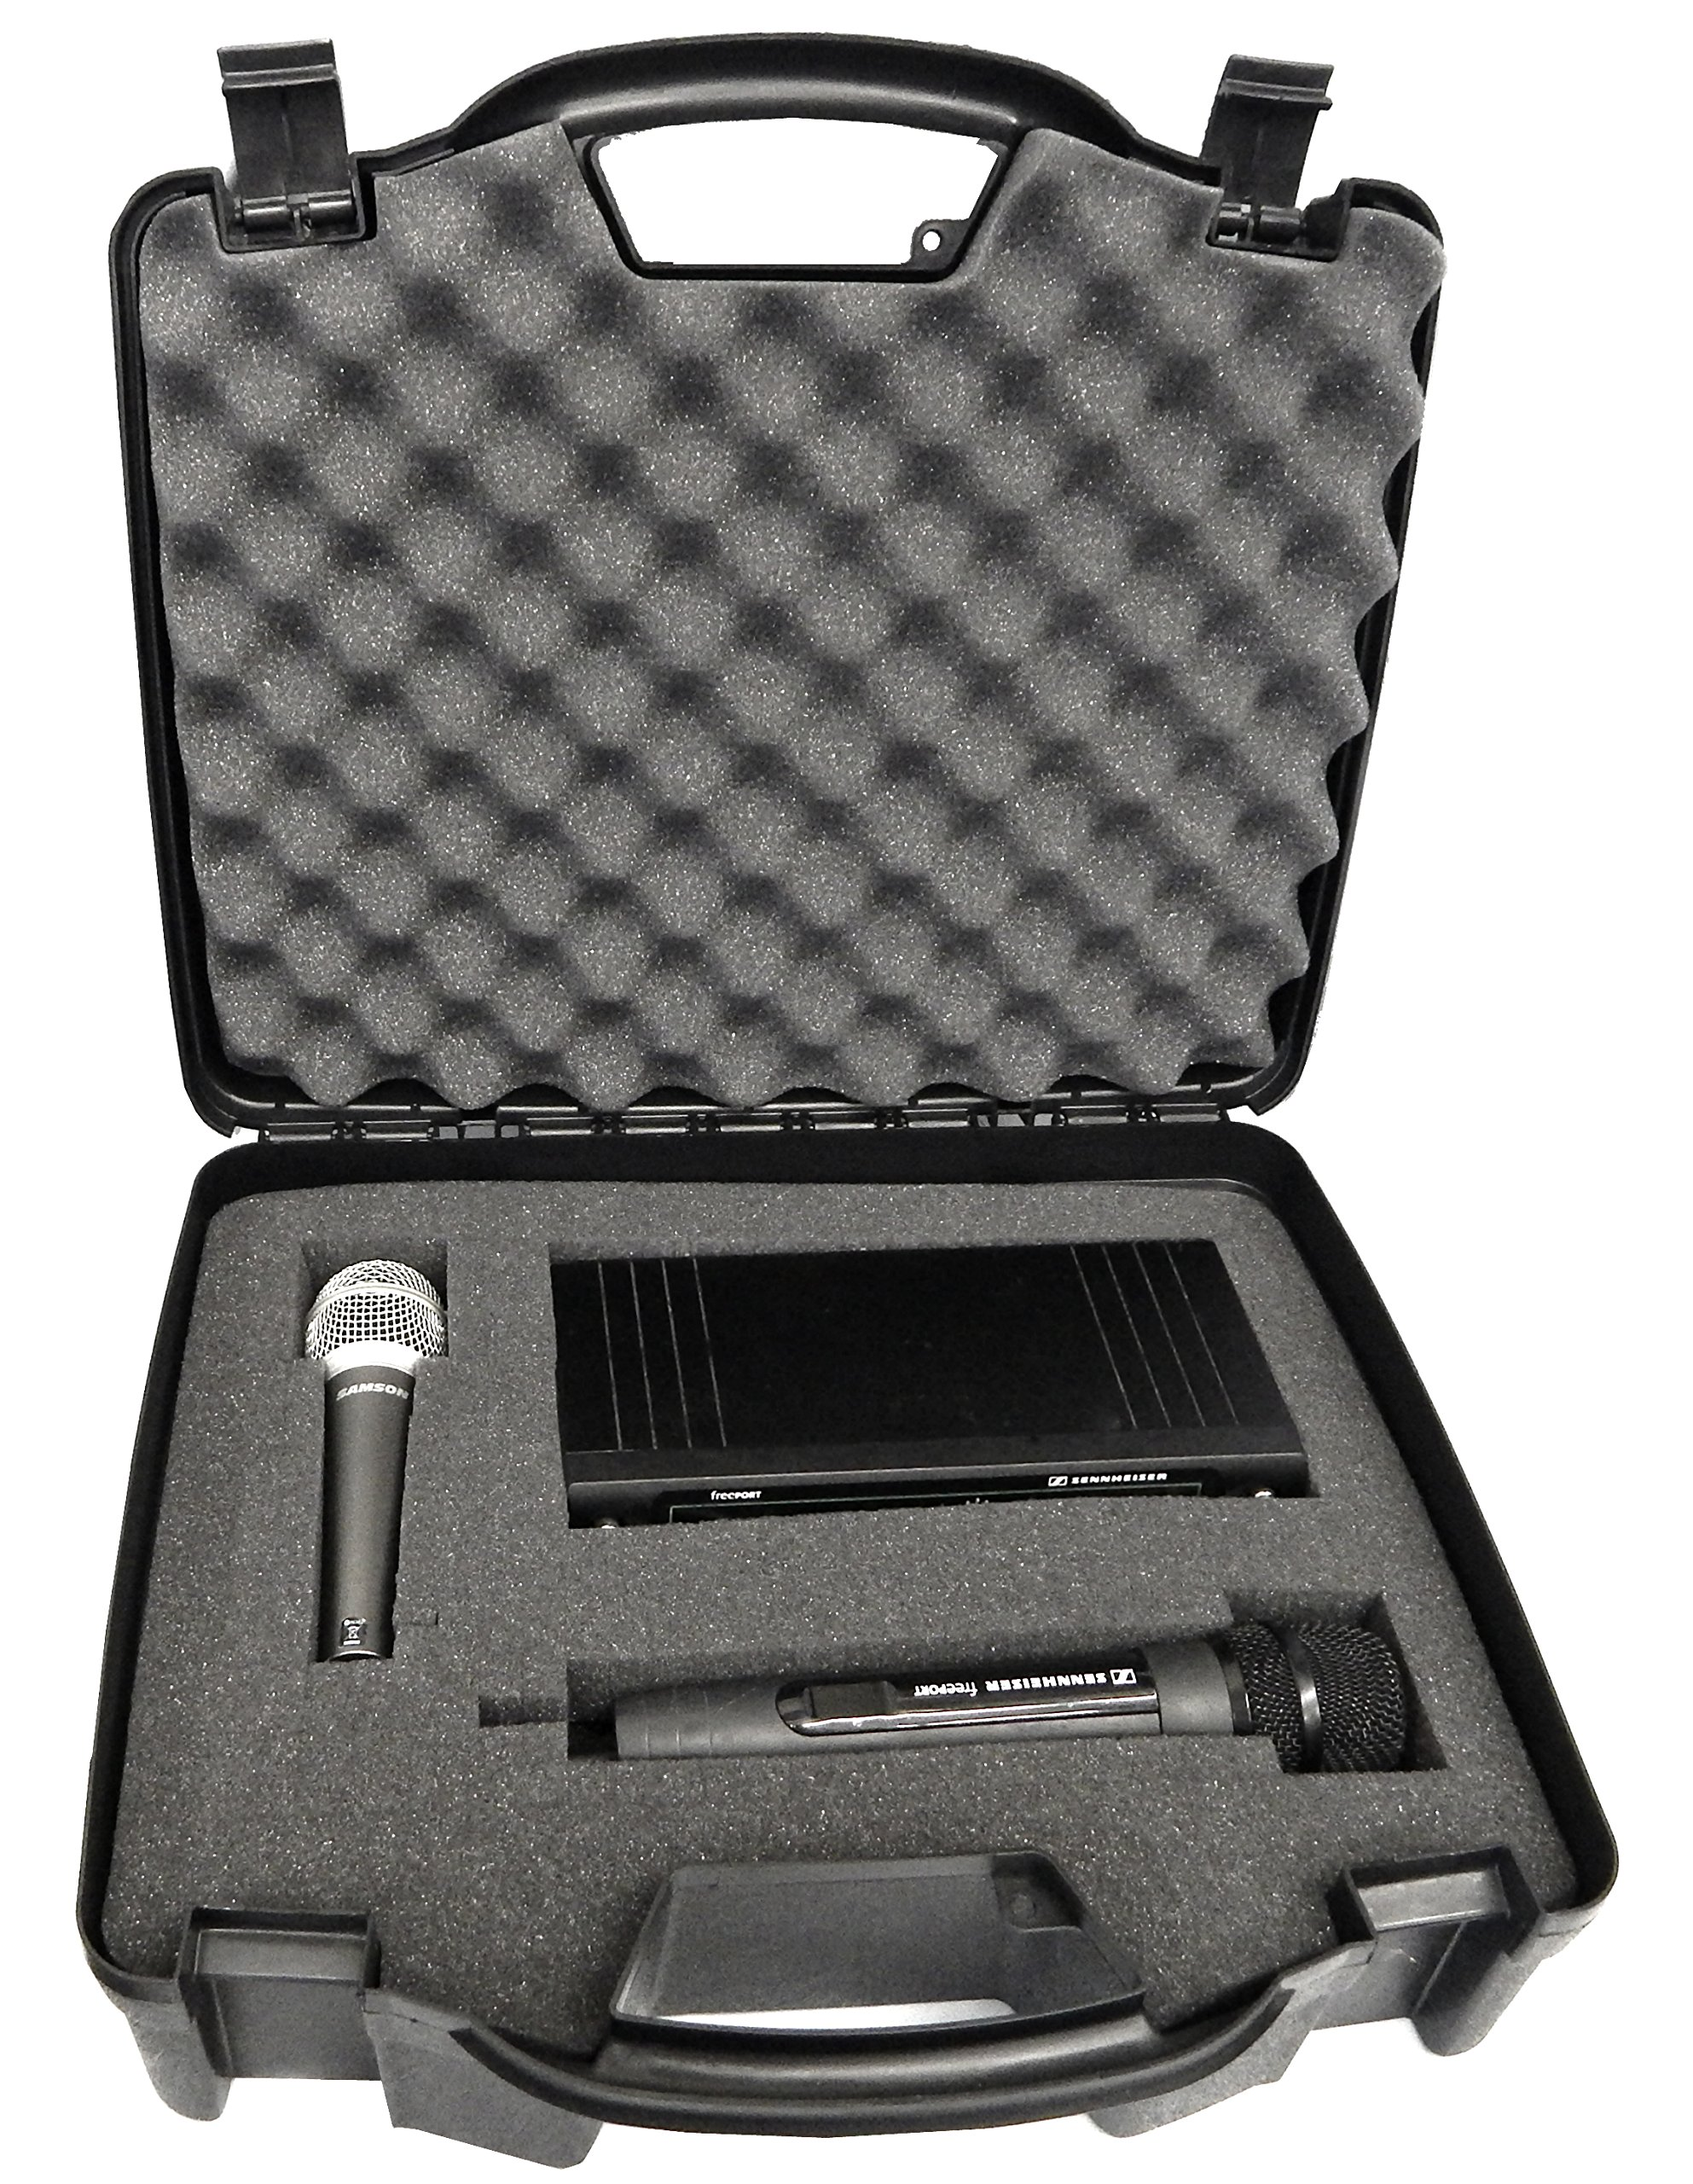 STUDIOCASE Wireless Microphone System Hard Case w/ Foam - Fits Sennheiser , Shure , Audio-Technica , Nady , VocoPro , AKG With Receiver , Body Transmitter , UHF Headset , Lavalier and Handheld Mics